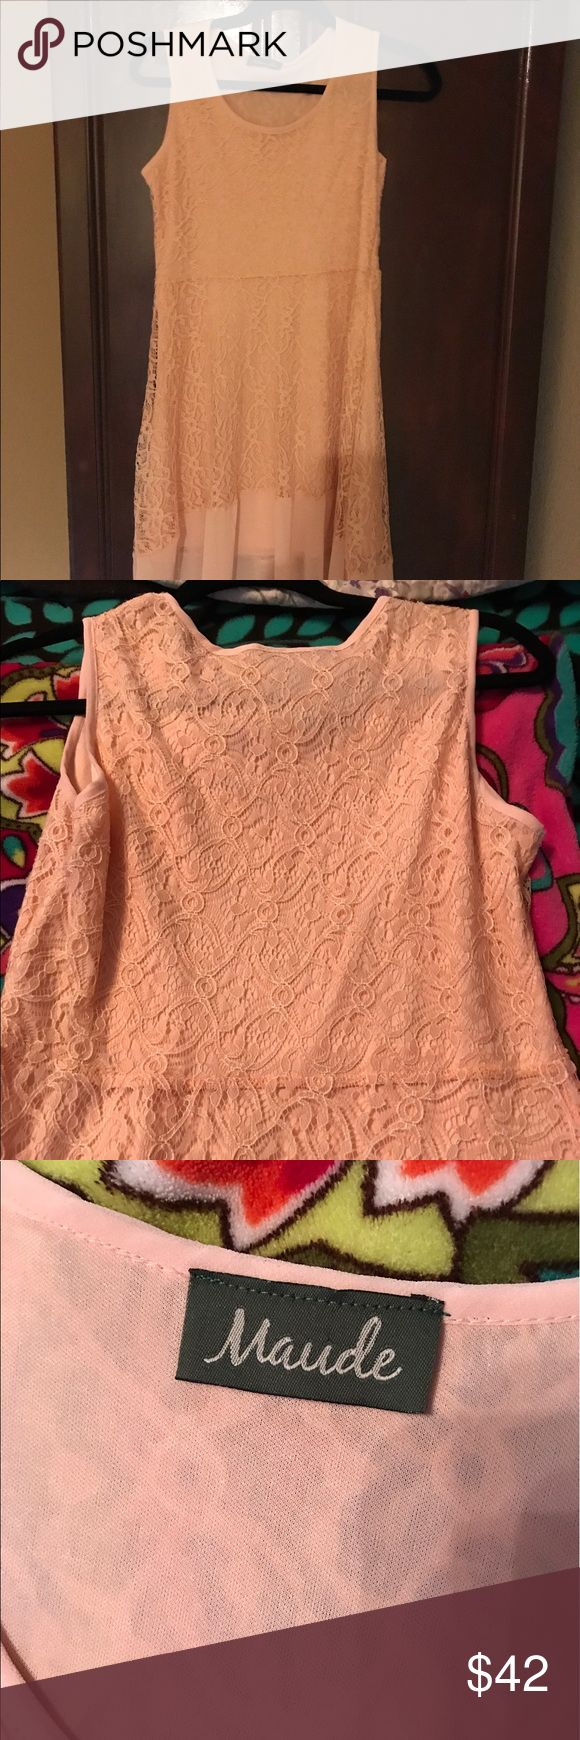 Beautiful Maude Peach Lace dress Beautiful peach lace dress with elastic waist. It's longer in the back than the front with a sheer overlay. Maude Dresses Midi